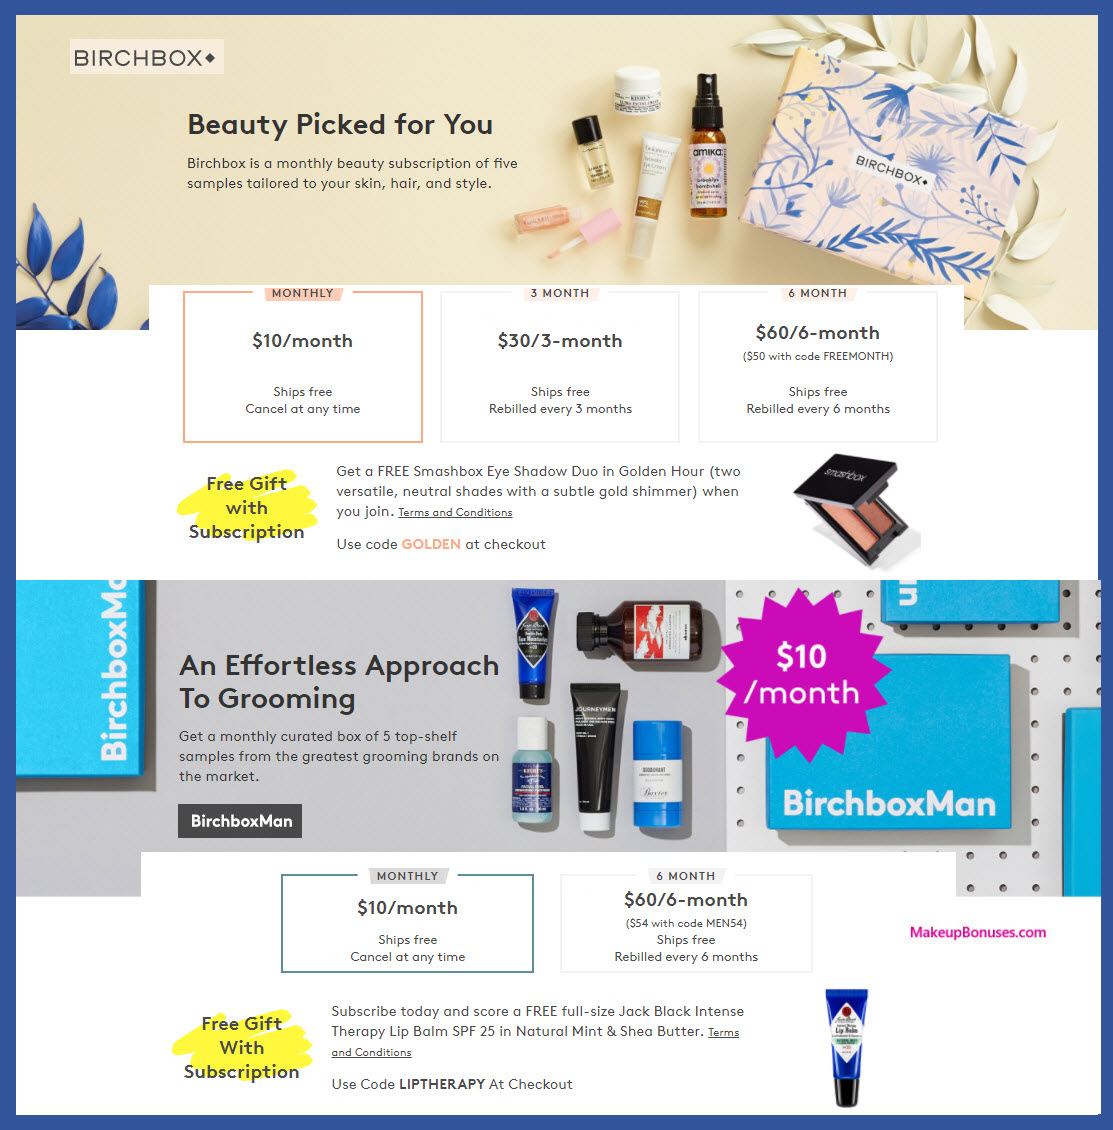 Birchbox Beauty Box 2018 - MakeupBonuses.com